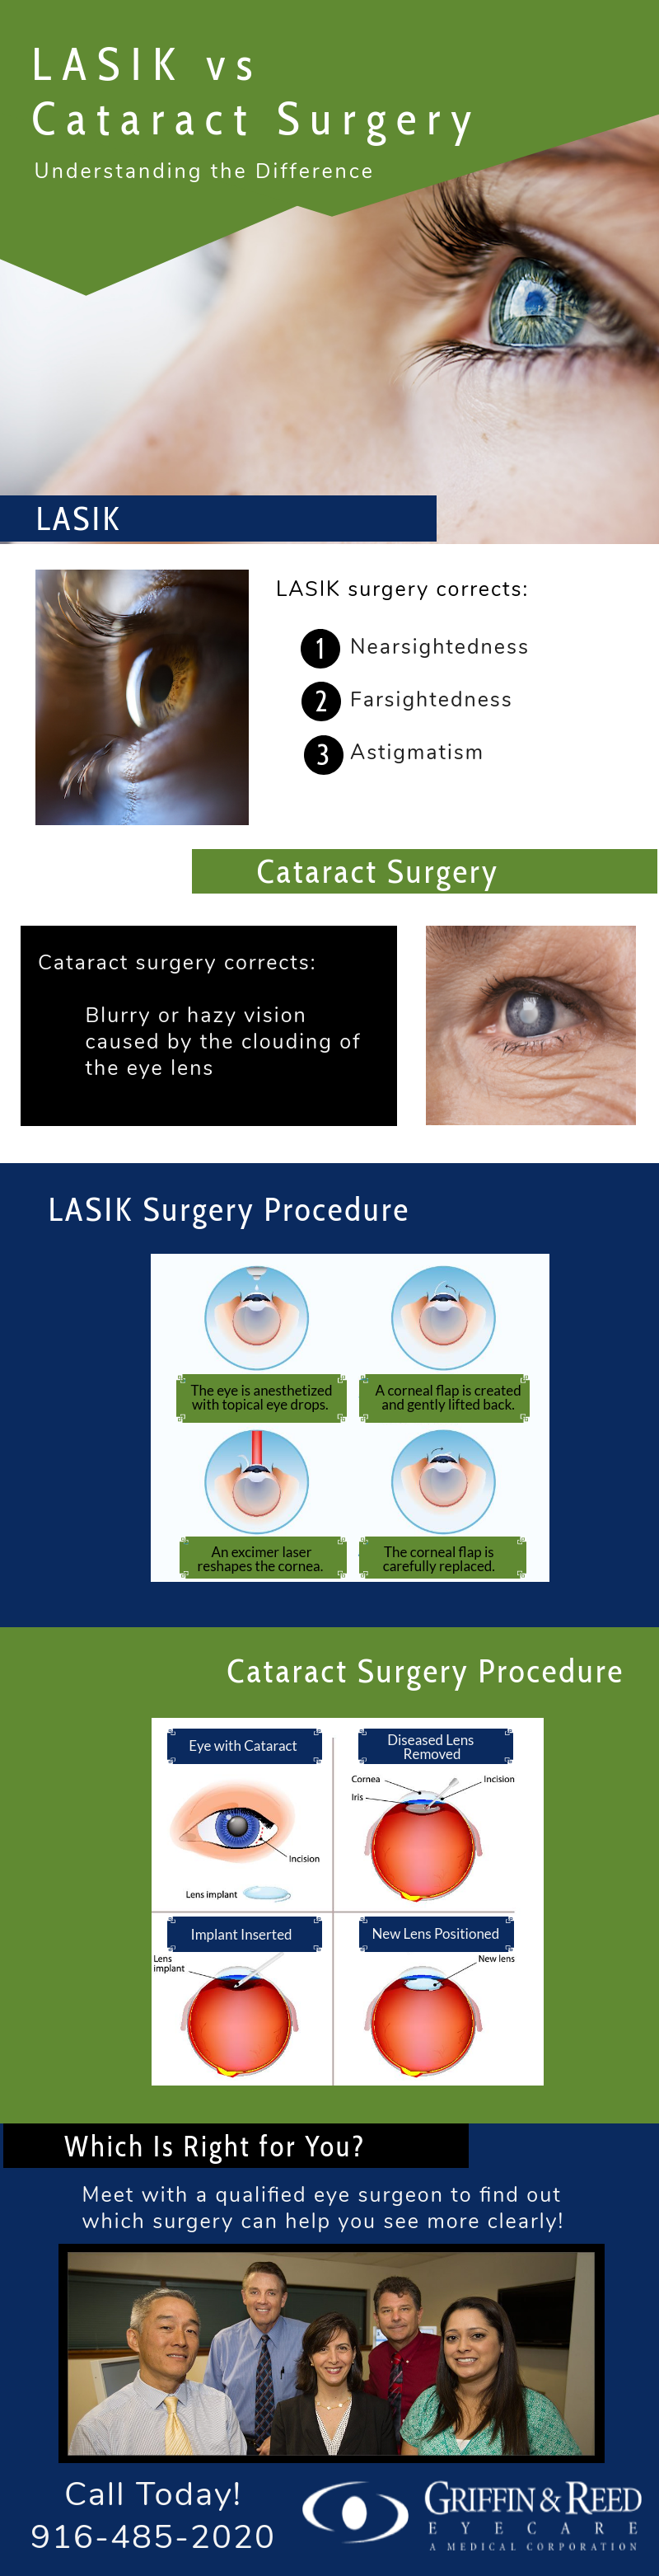 LASIK vs Cataract Surgery